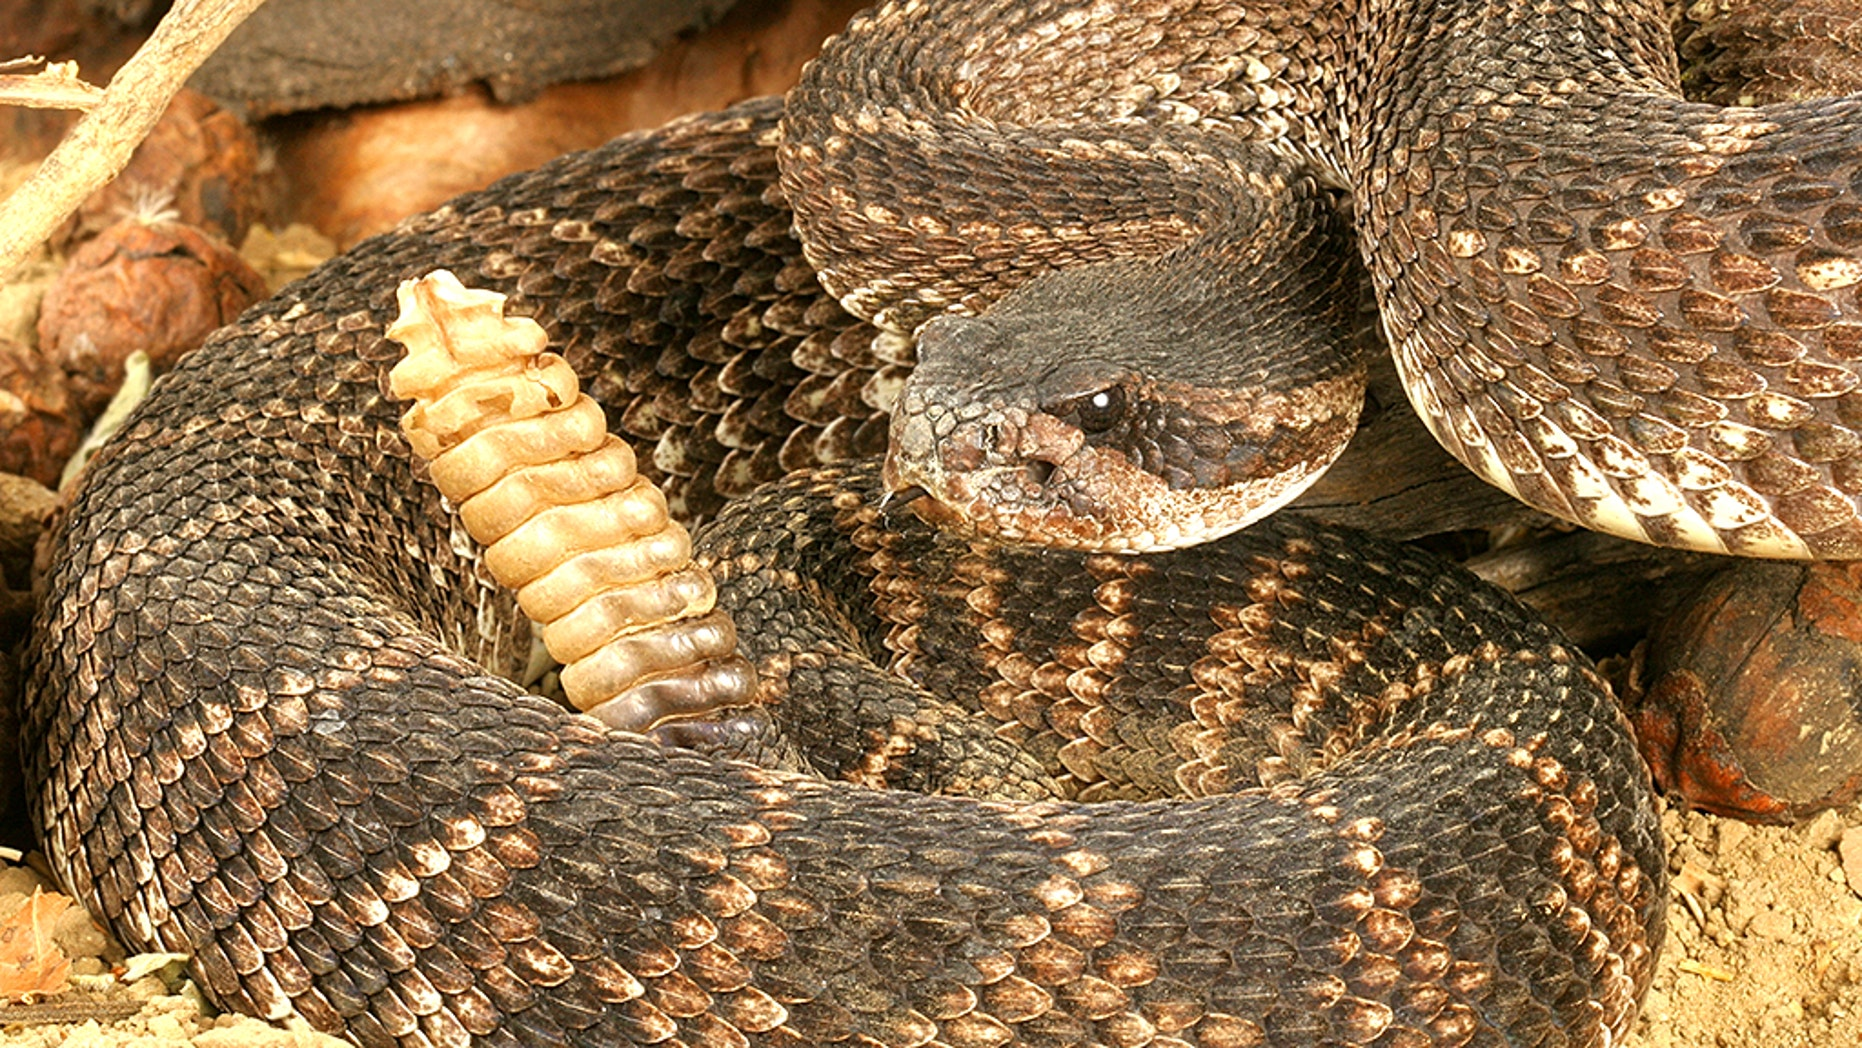 A Texas resident found dozens of rattlesnakes underneath his home.